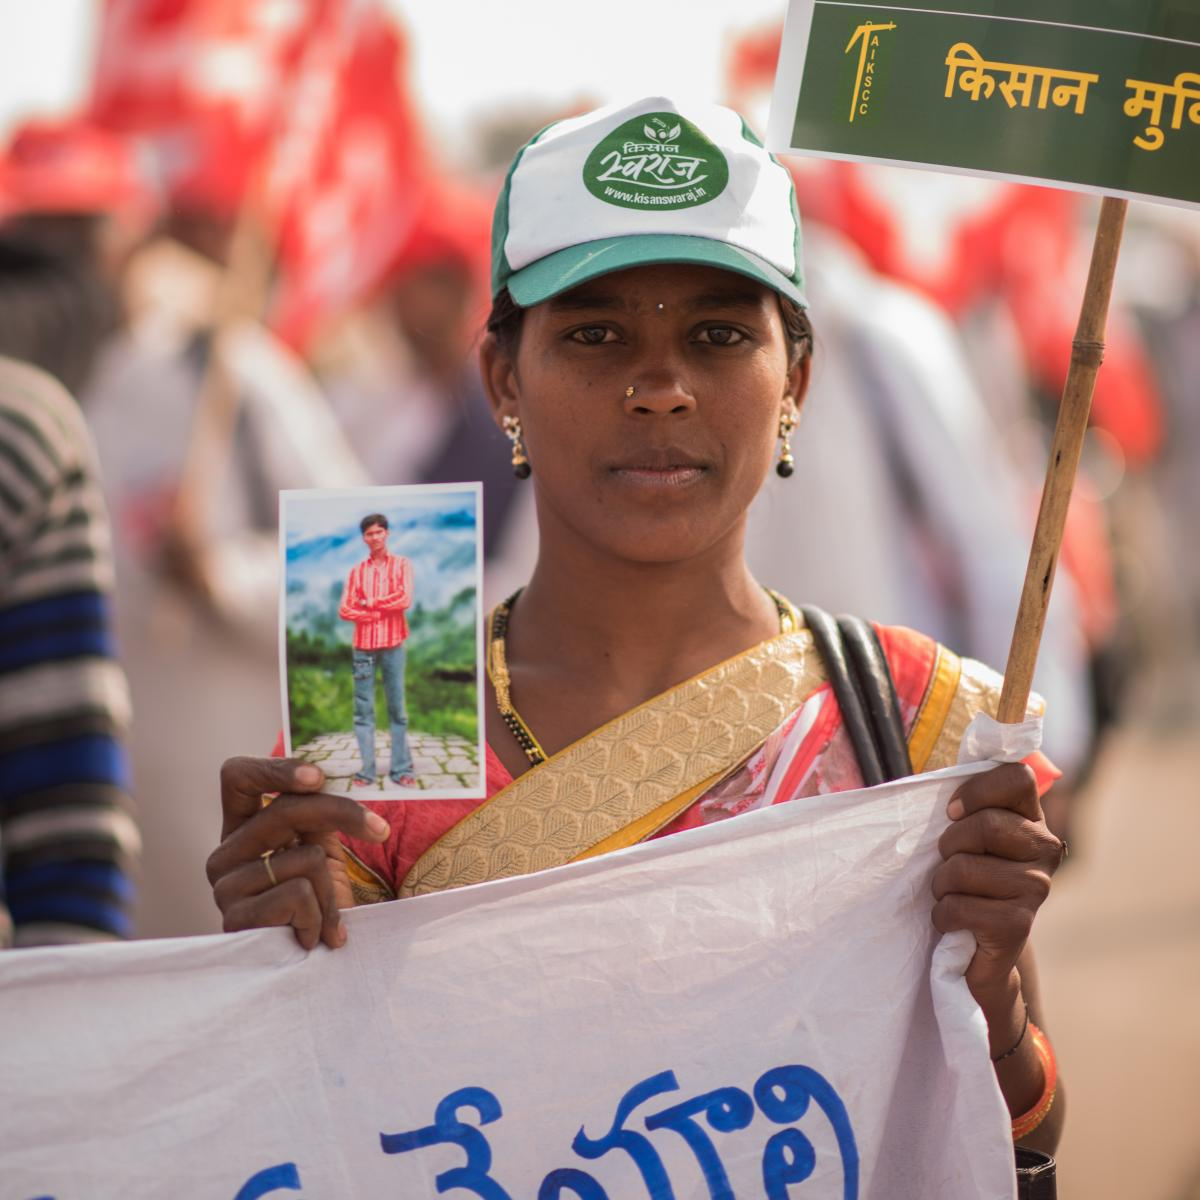 Surya Raga, a cotton farmer from Telangana, holding her husband's photo. He killed himself in 2014, after being unable to repay his loans.